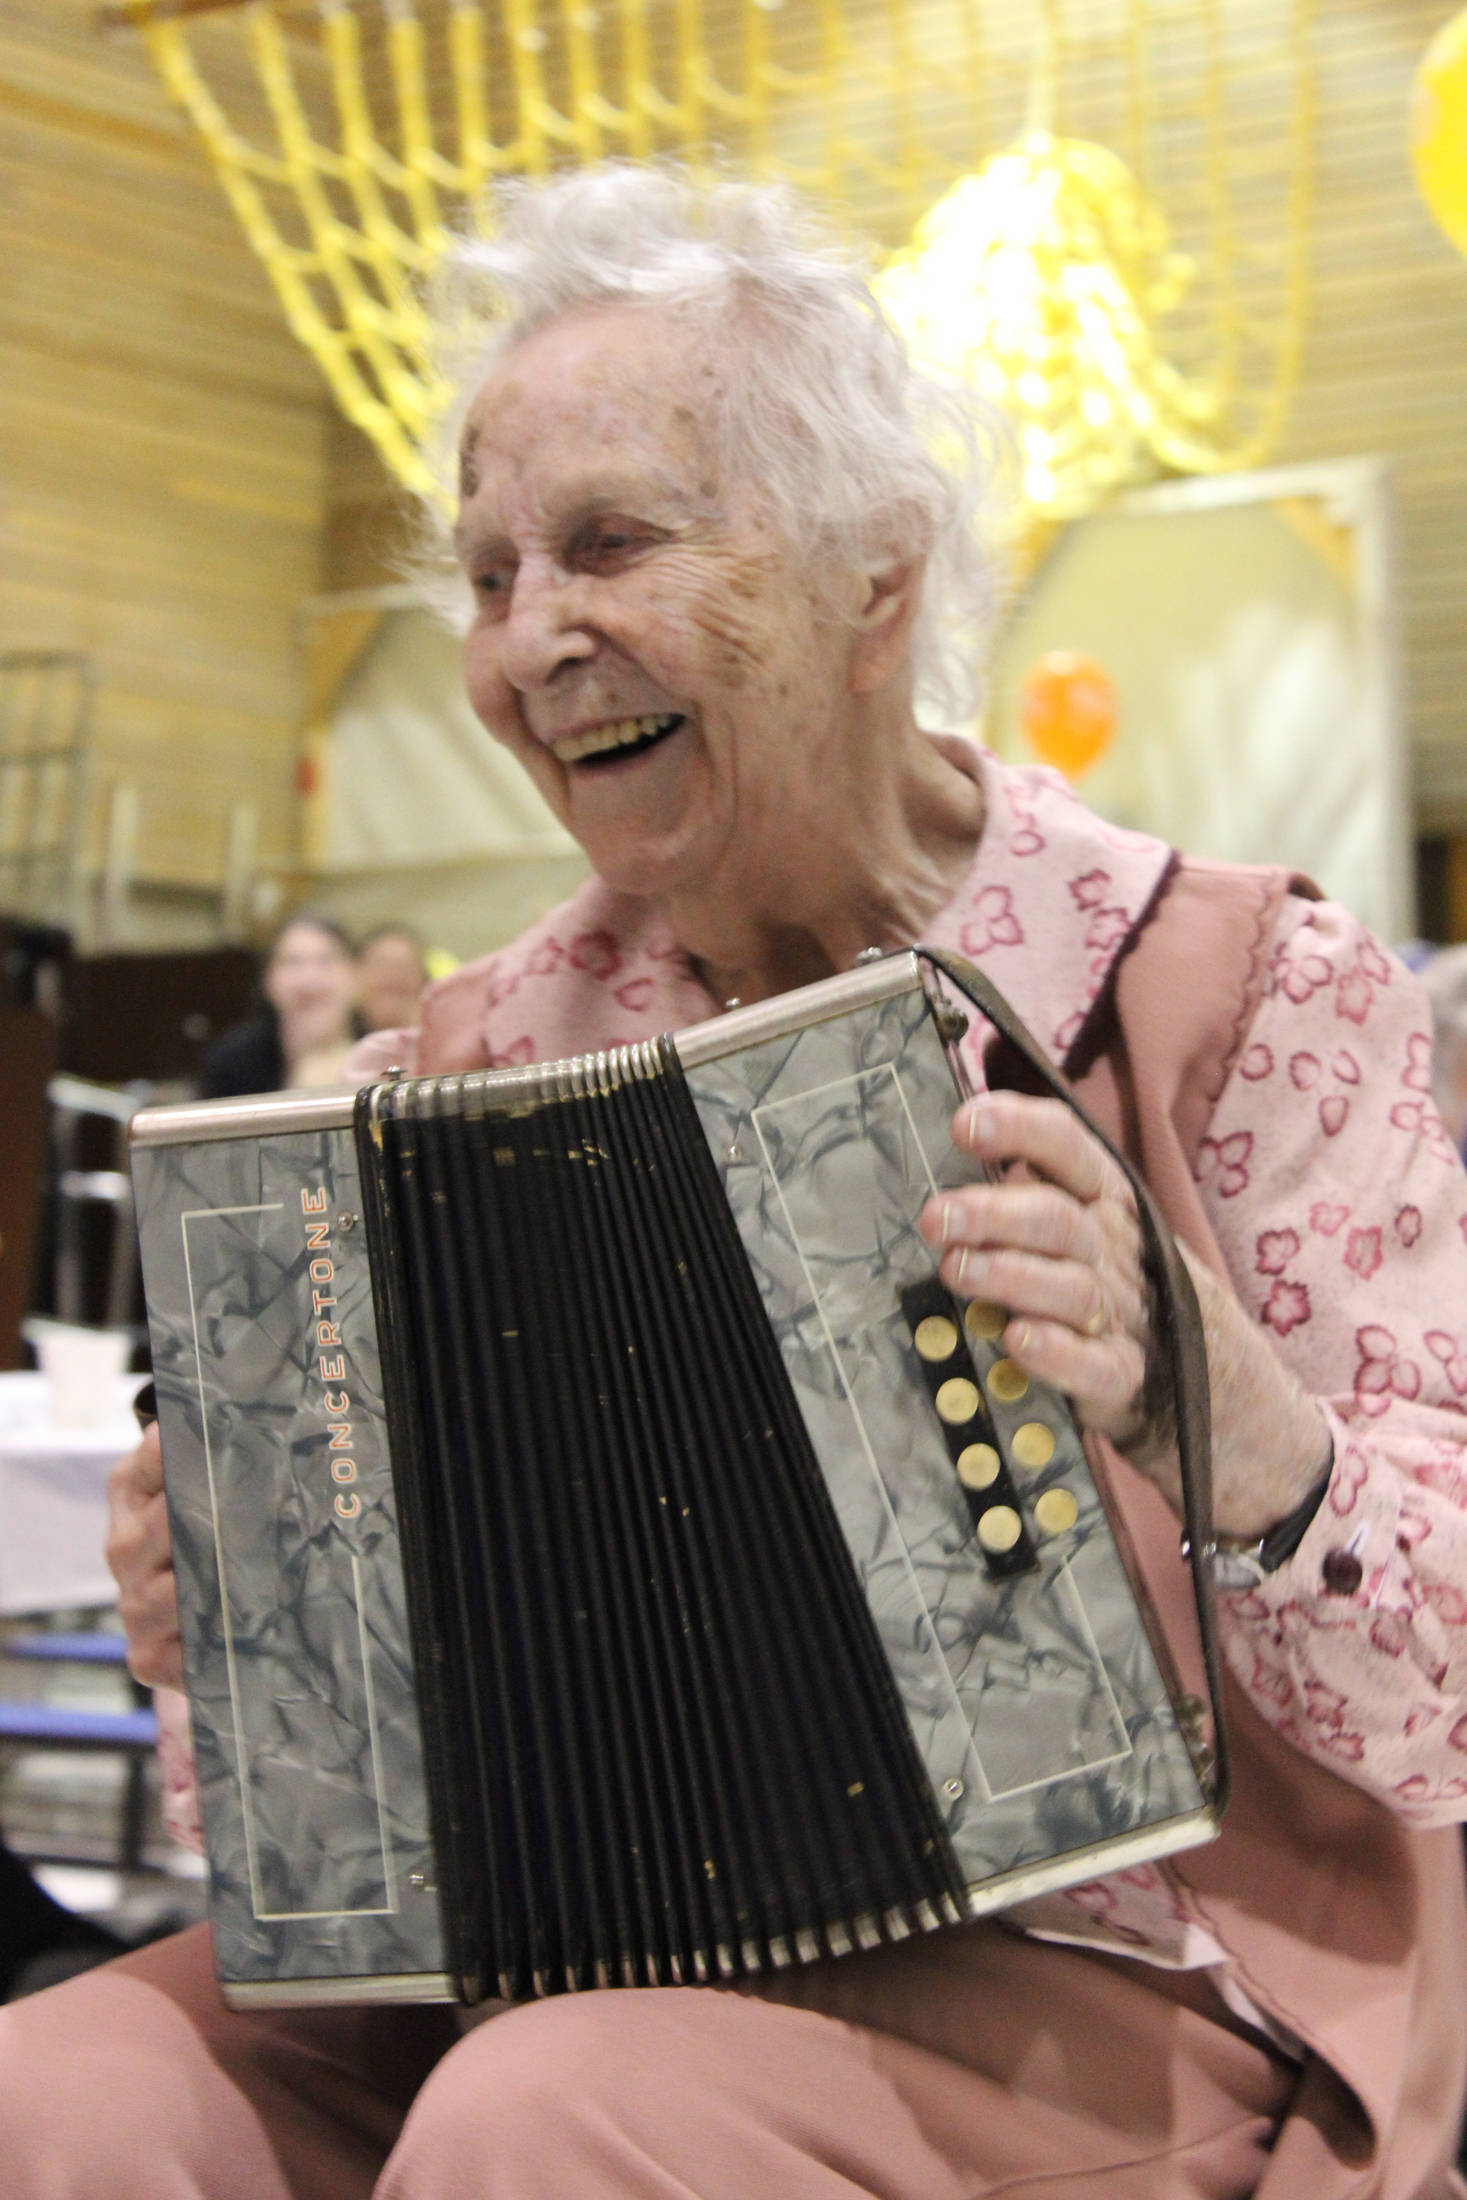 """Wilma Gregory celebrates her 100th birthday Saturday by serenading family and friends to """"Mockingbird Hill"""" played on her accordion. The celebration was held at McNeil Canyon School. (Photo by McKibben Jackinsky)"""